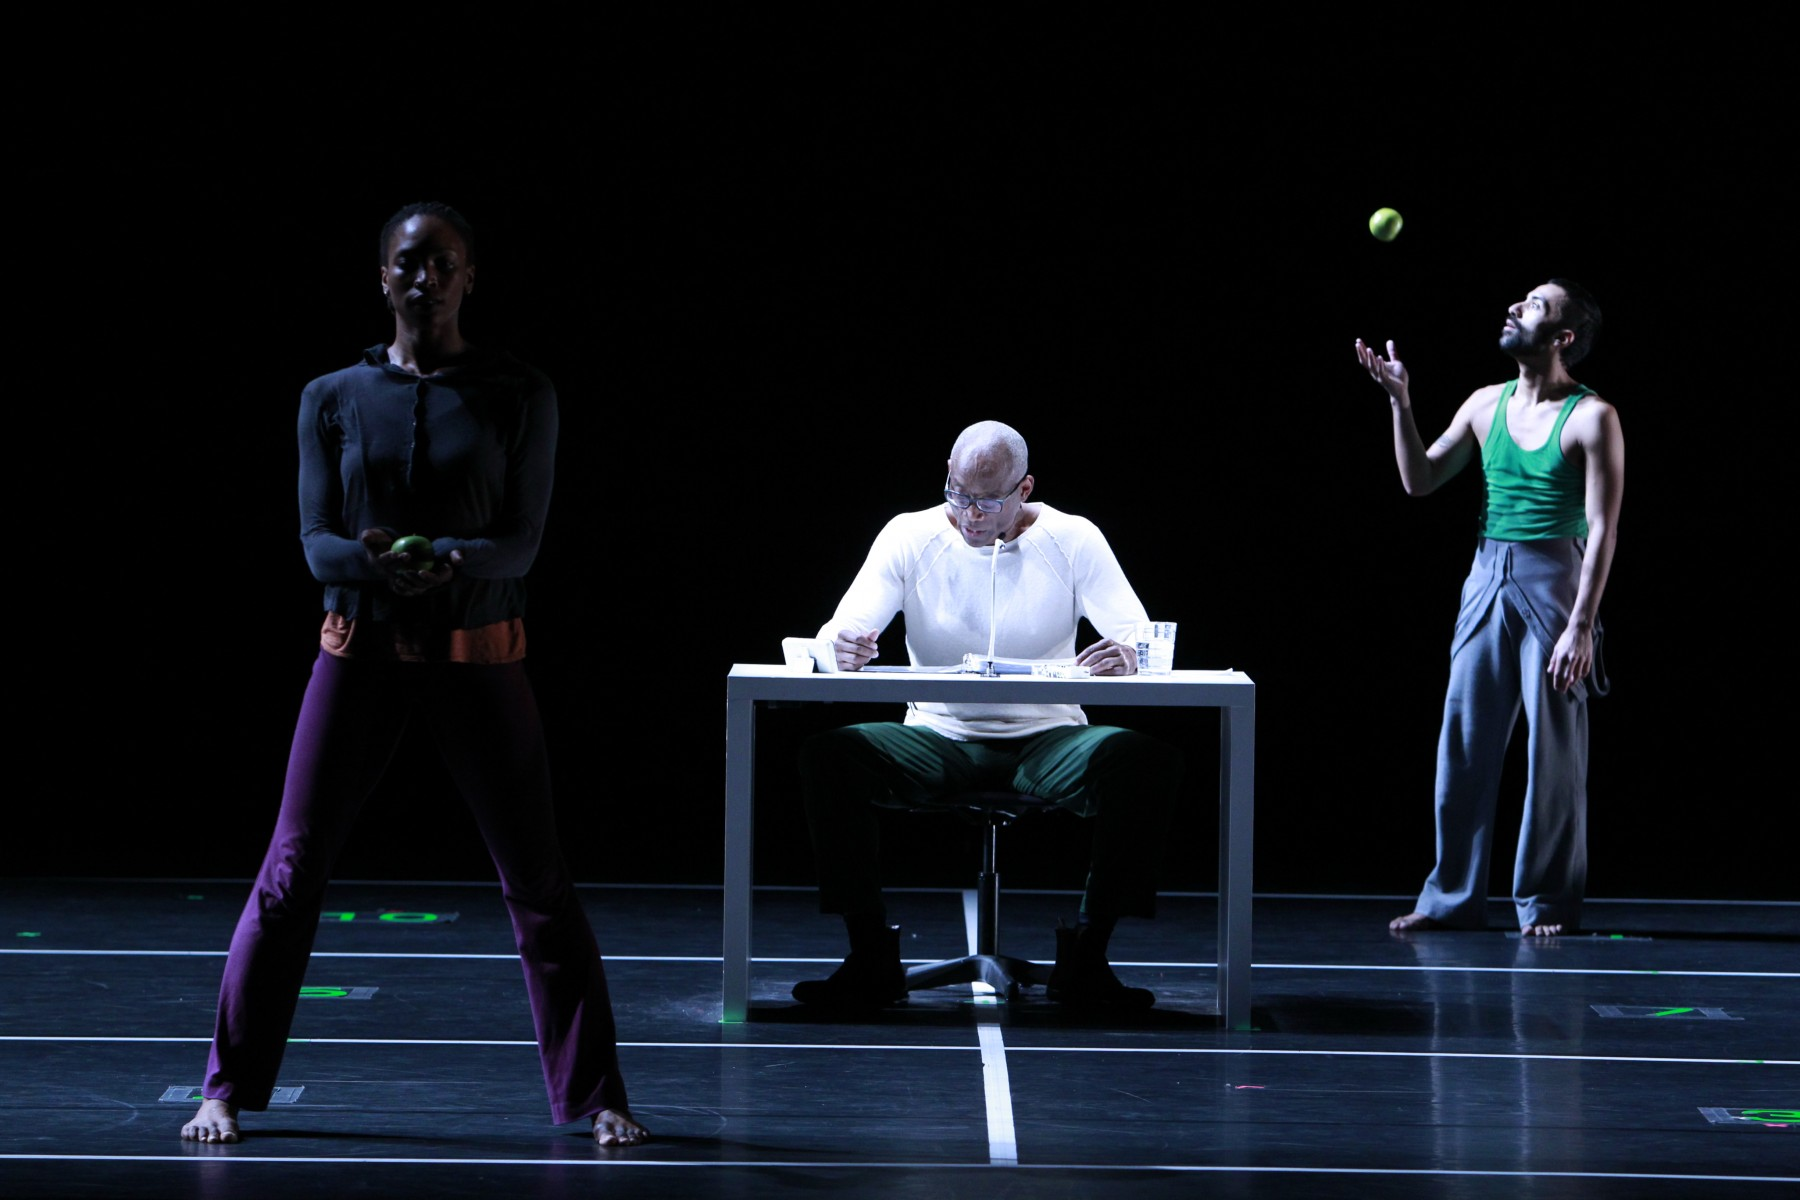 Bill T. Jones/Arnie Zane Company in Story/Time. Photo: Paul B. Goode